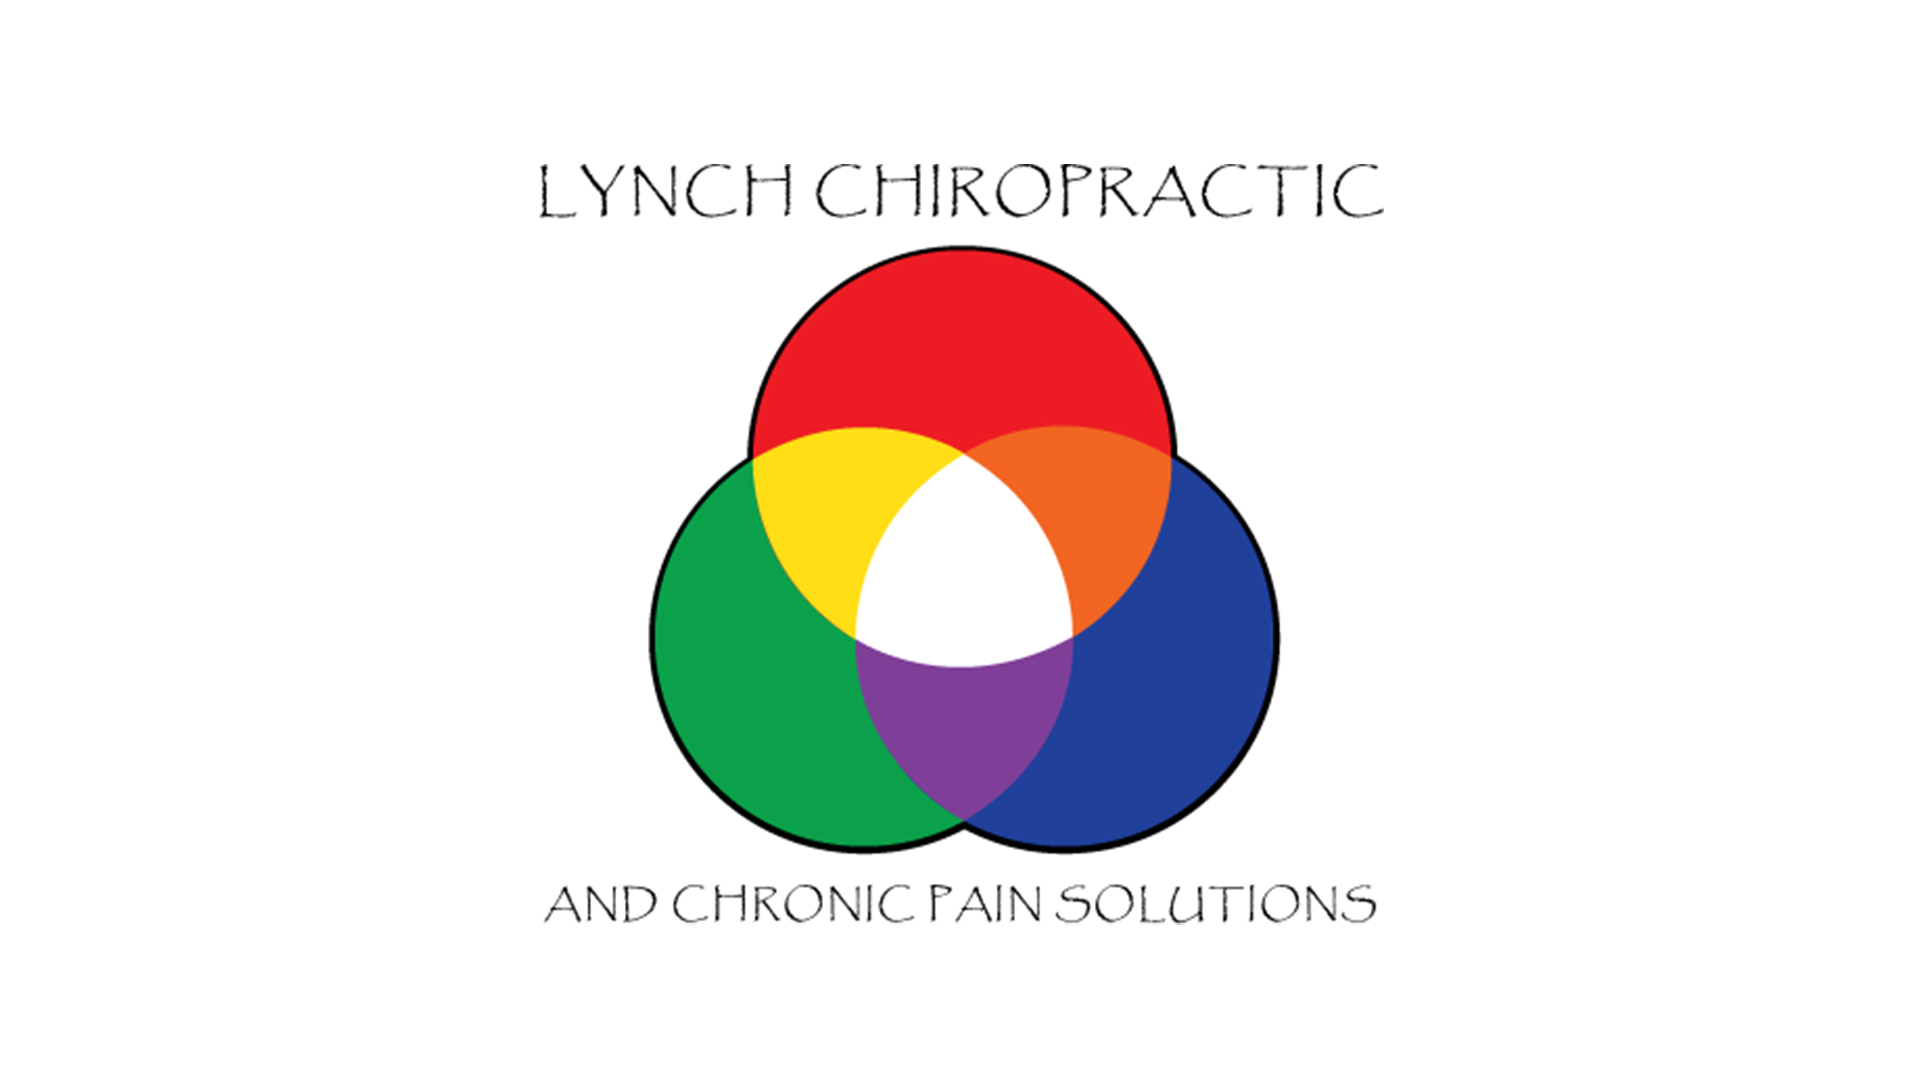 Lynch Chiropractic and Chronic Pain Solutions